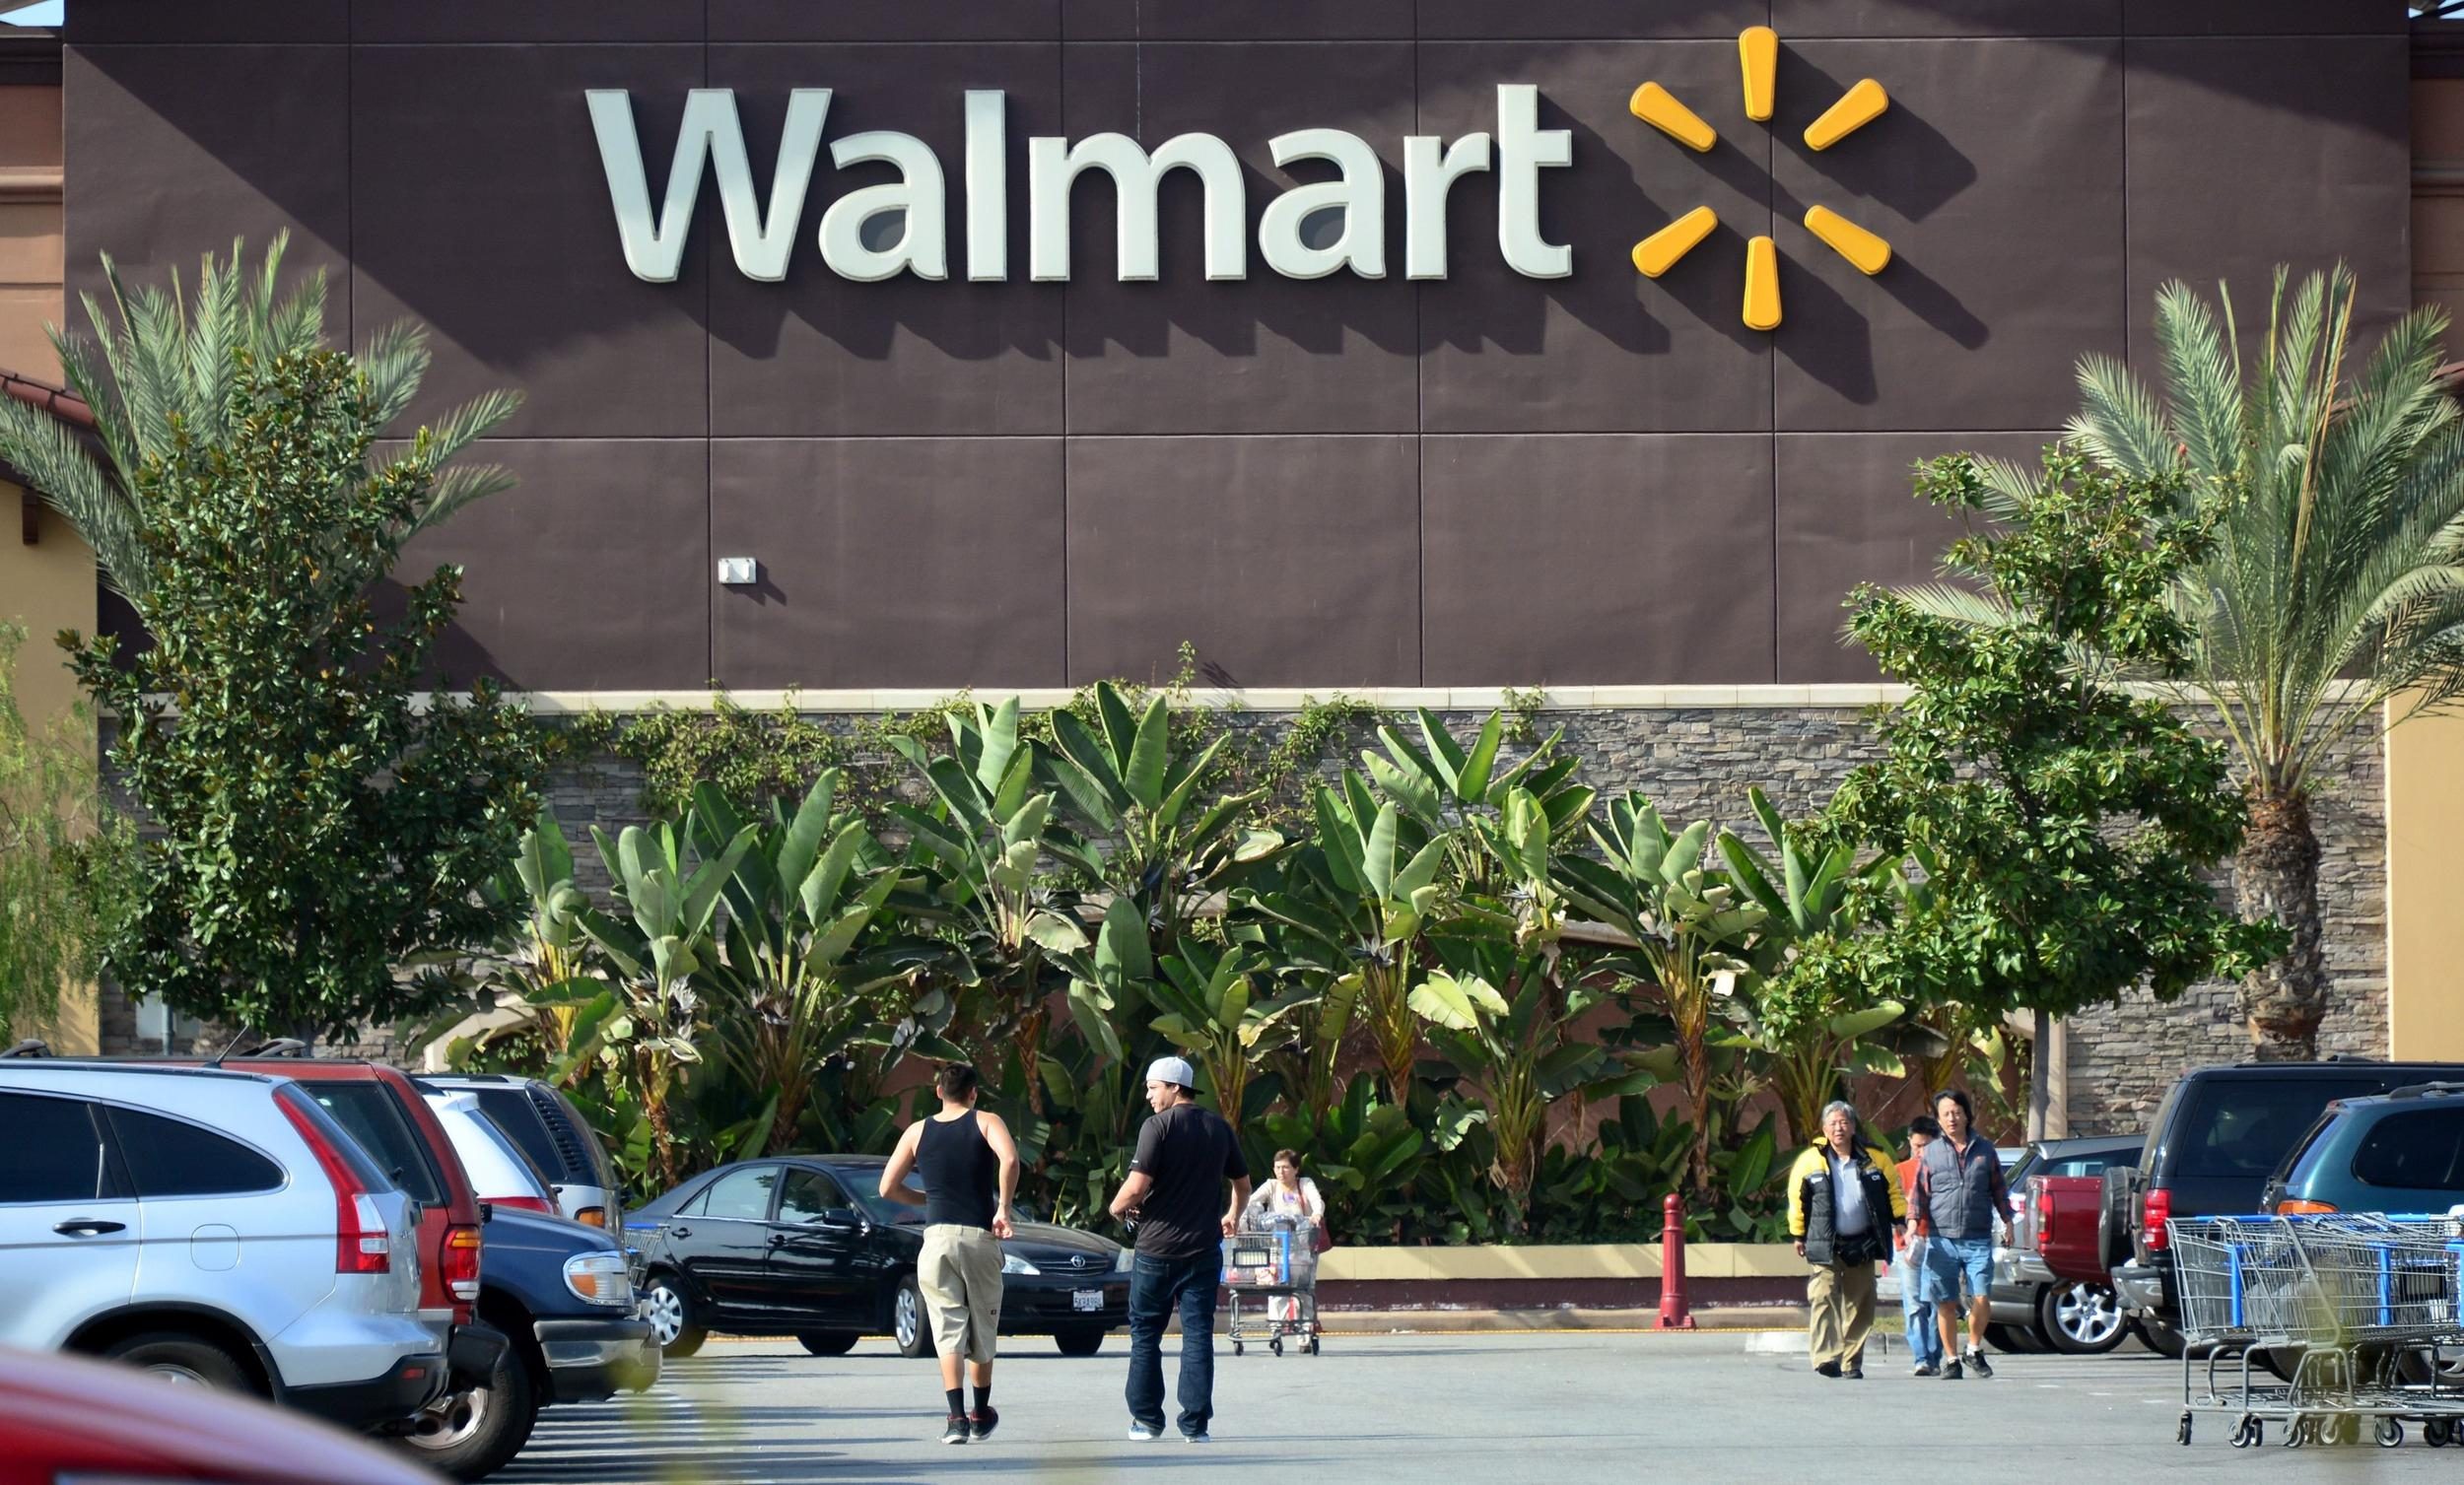 Wal-Mart Sues Visa Claiming Card Transaction Fee Conspiracy For $5B